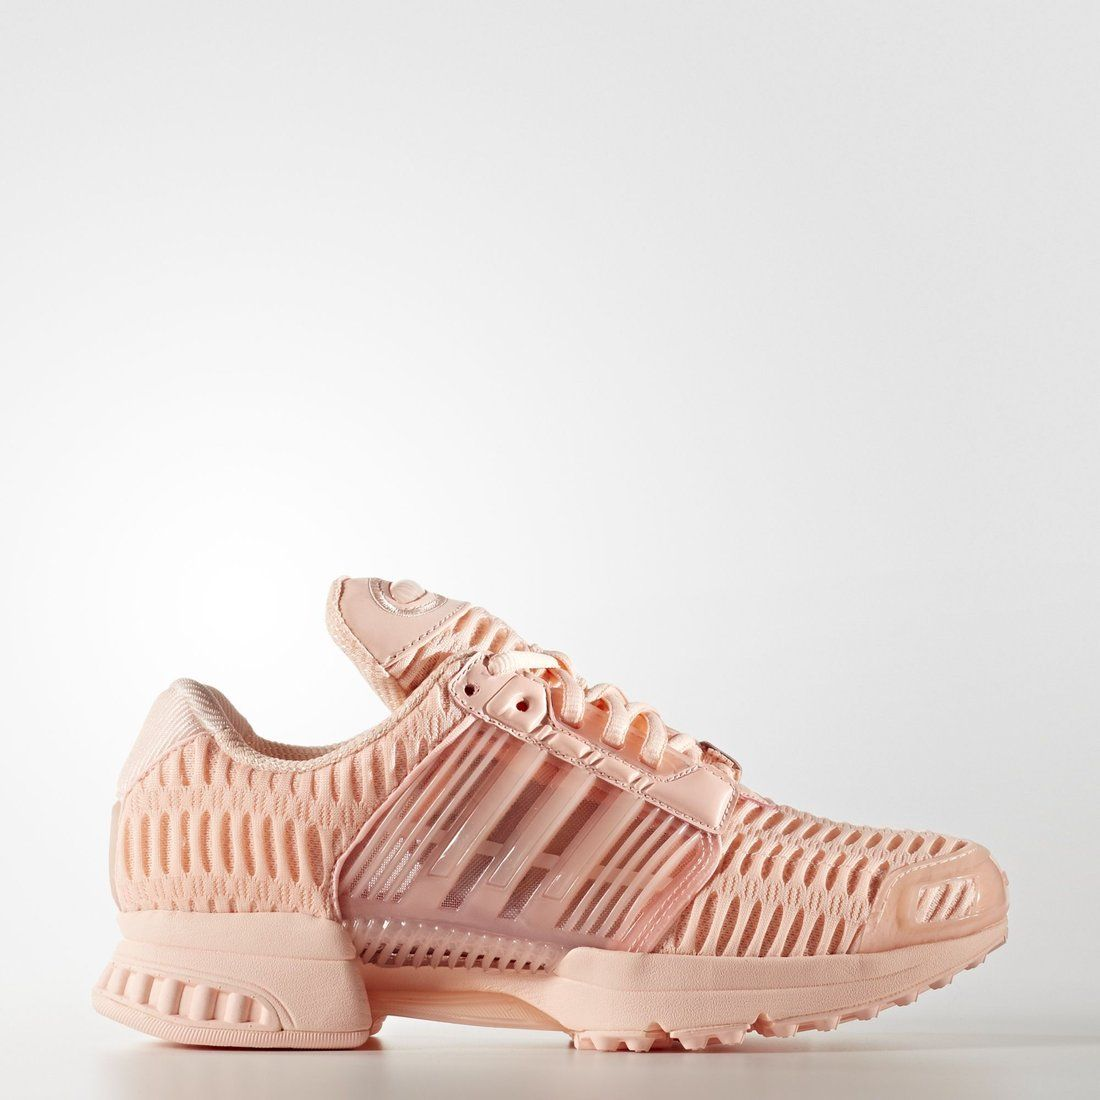 6028a12627af Adidas Climacool 1 Shoes